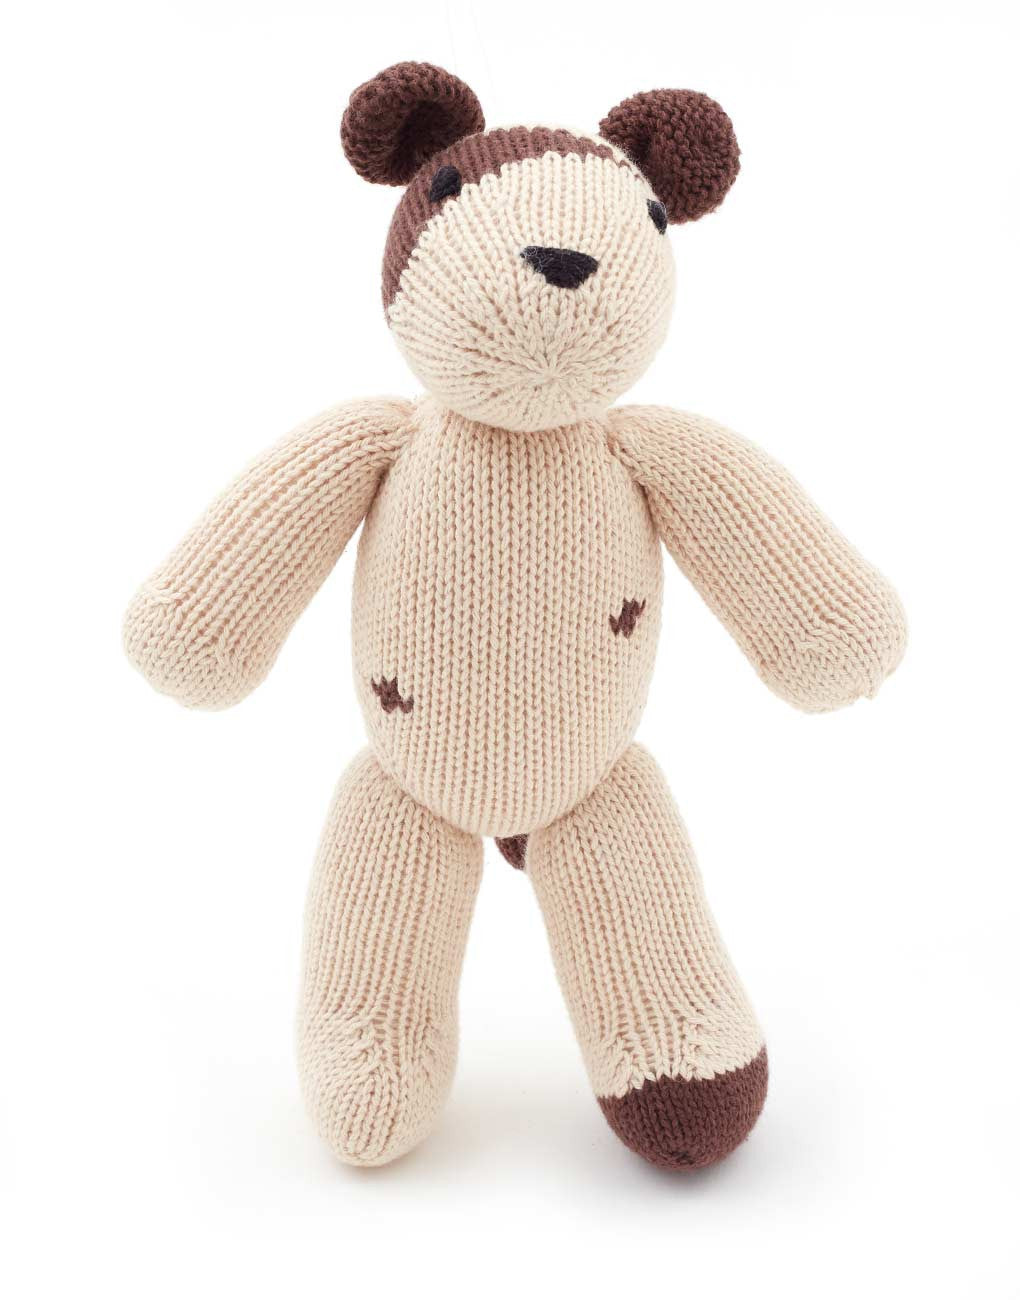 Fair Trade Artisan Knit Puppy Stuffed Animal